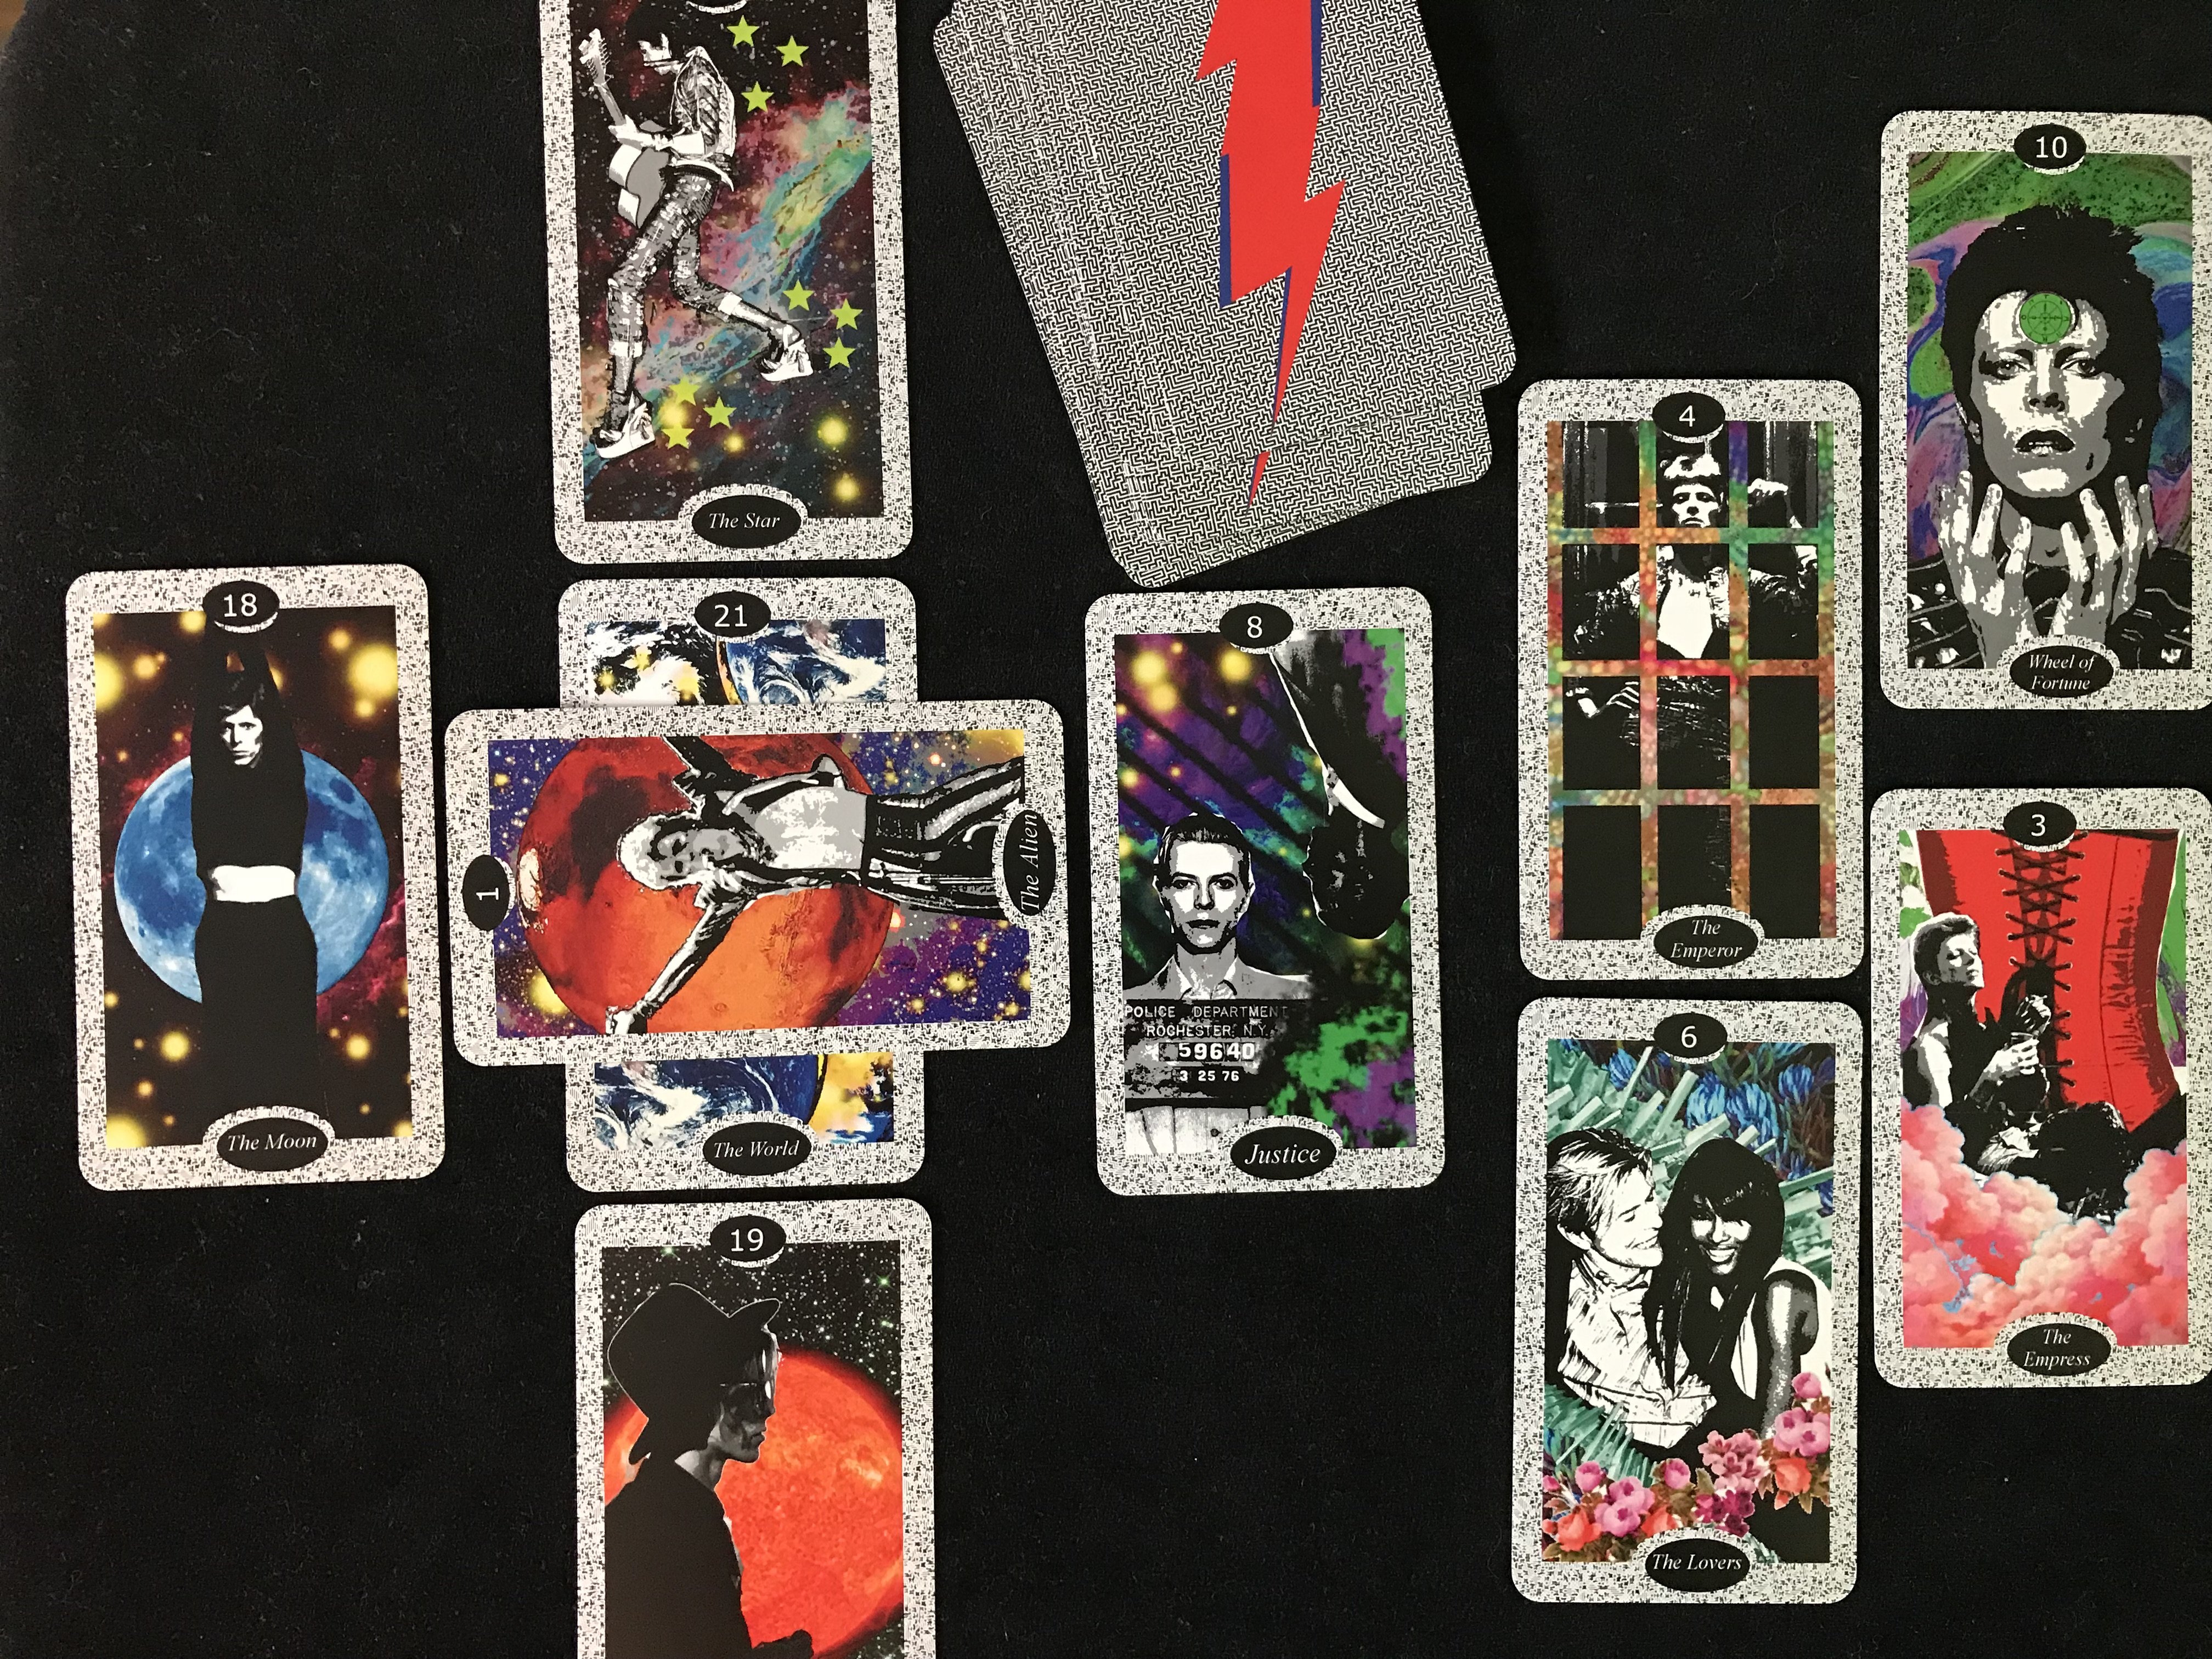 David Bowie Tarot spread